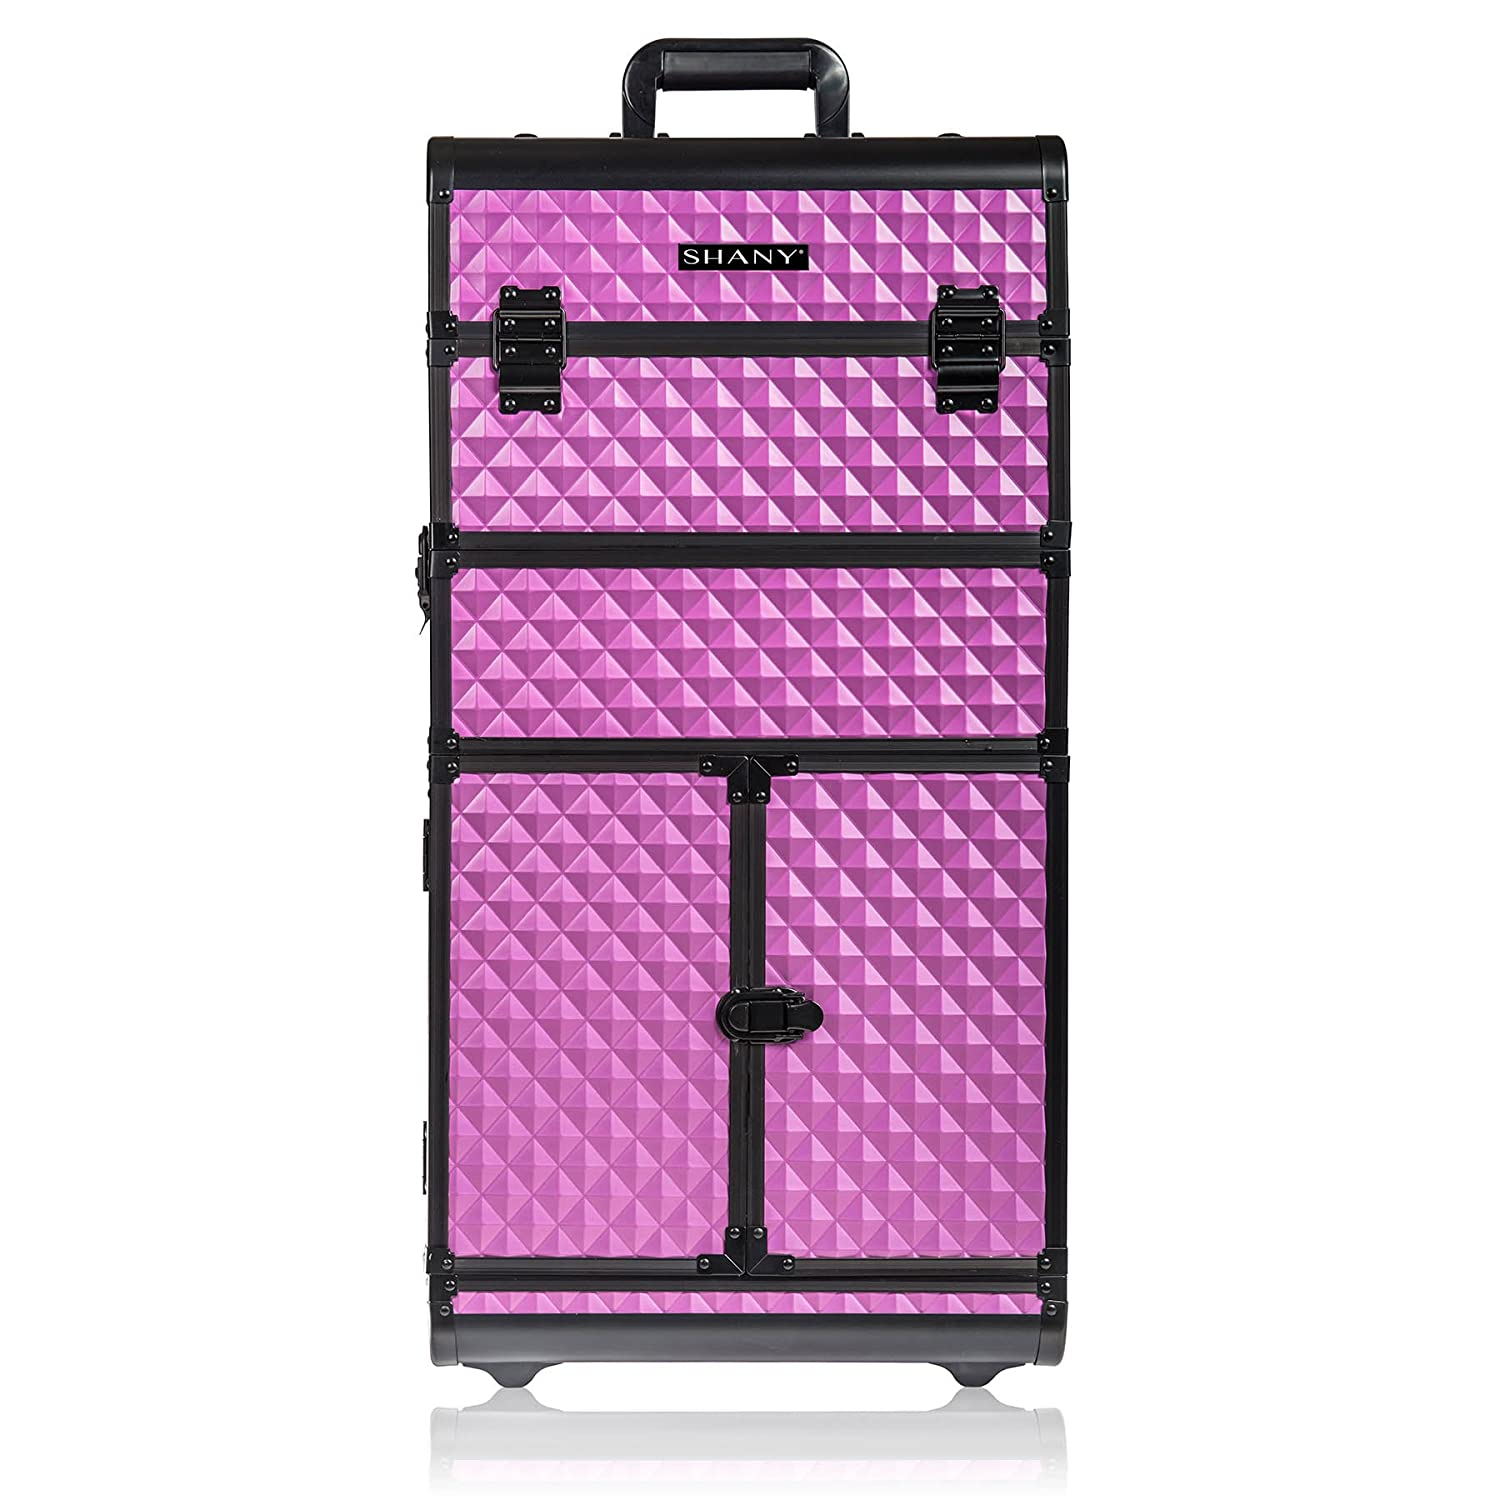 SHANY Rebel Series Pro Makeup Artists Rolling Train and Trolley Case, Charming Violet